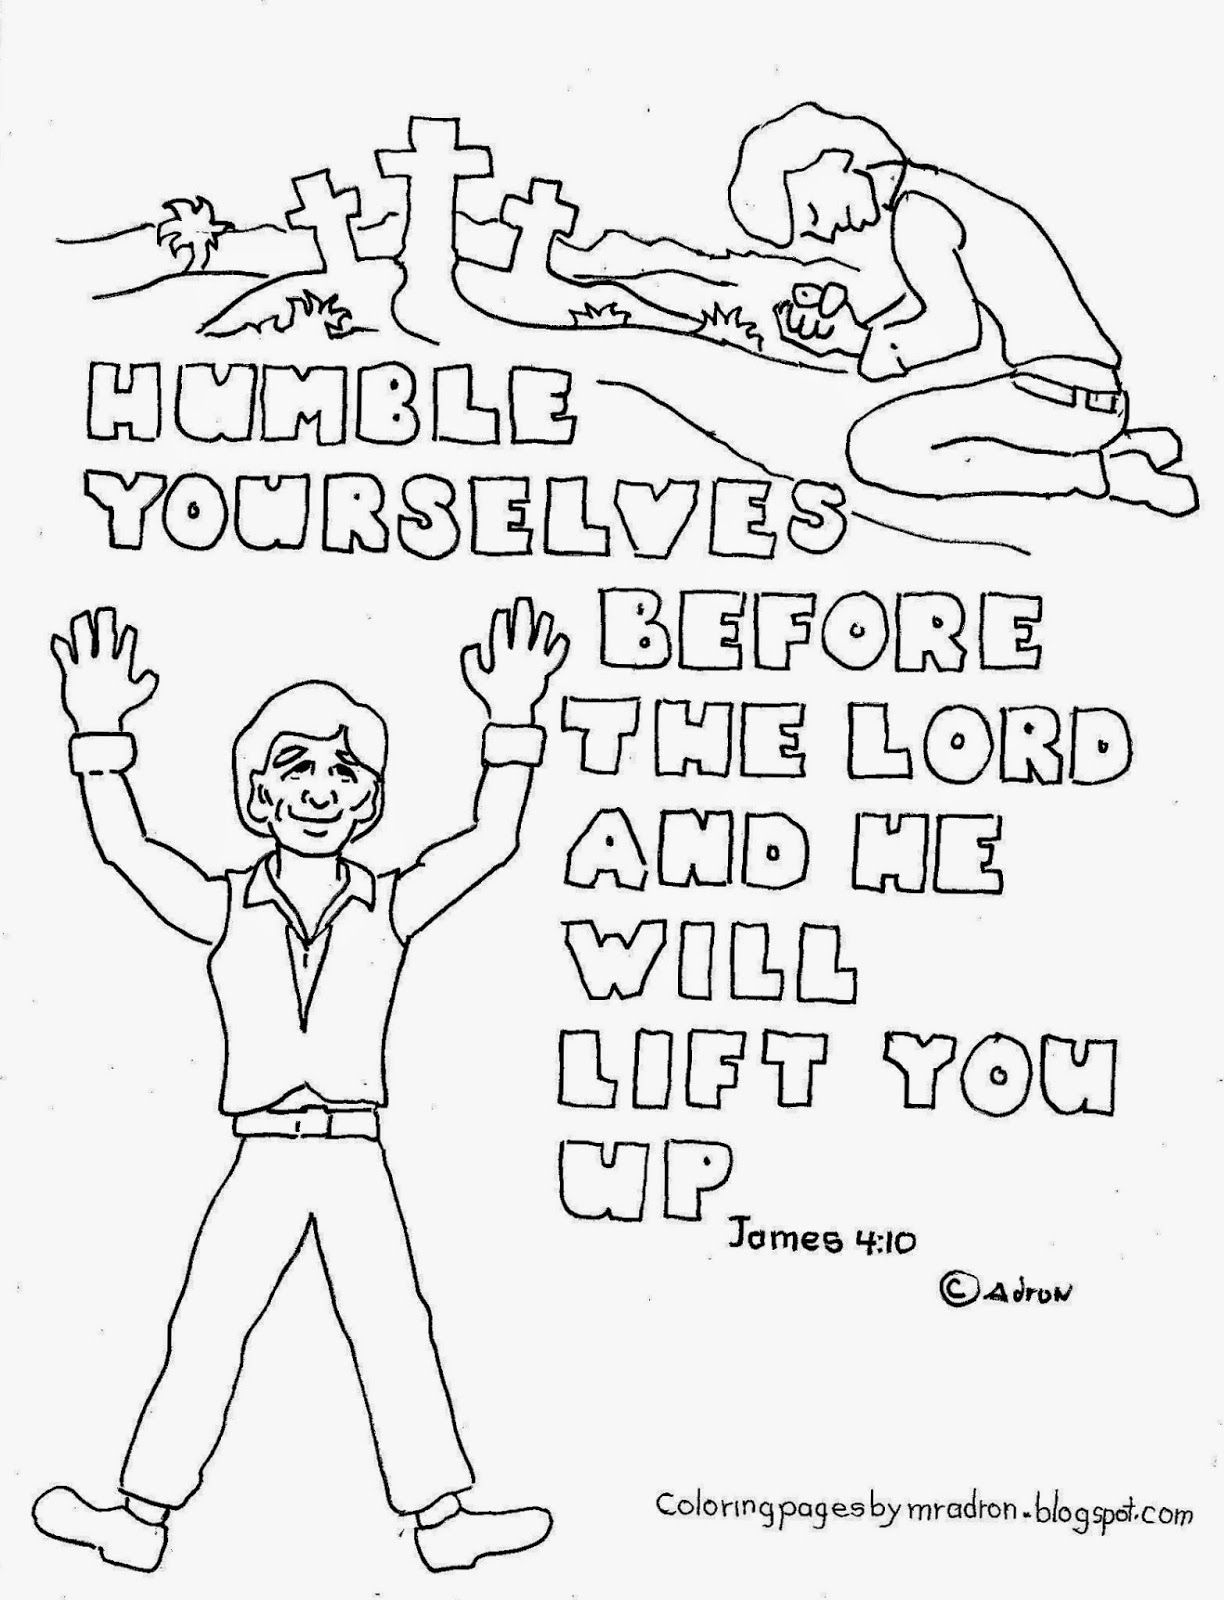 Bible Verse Coloring Page See More At My Blog